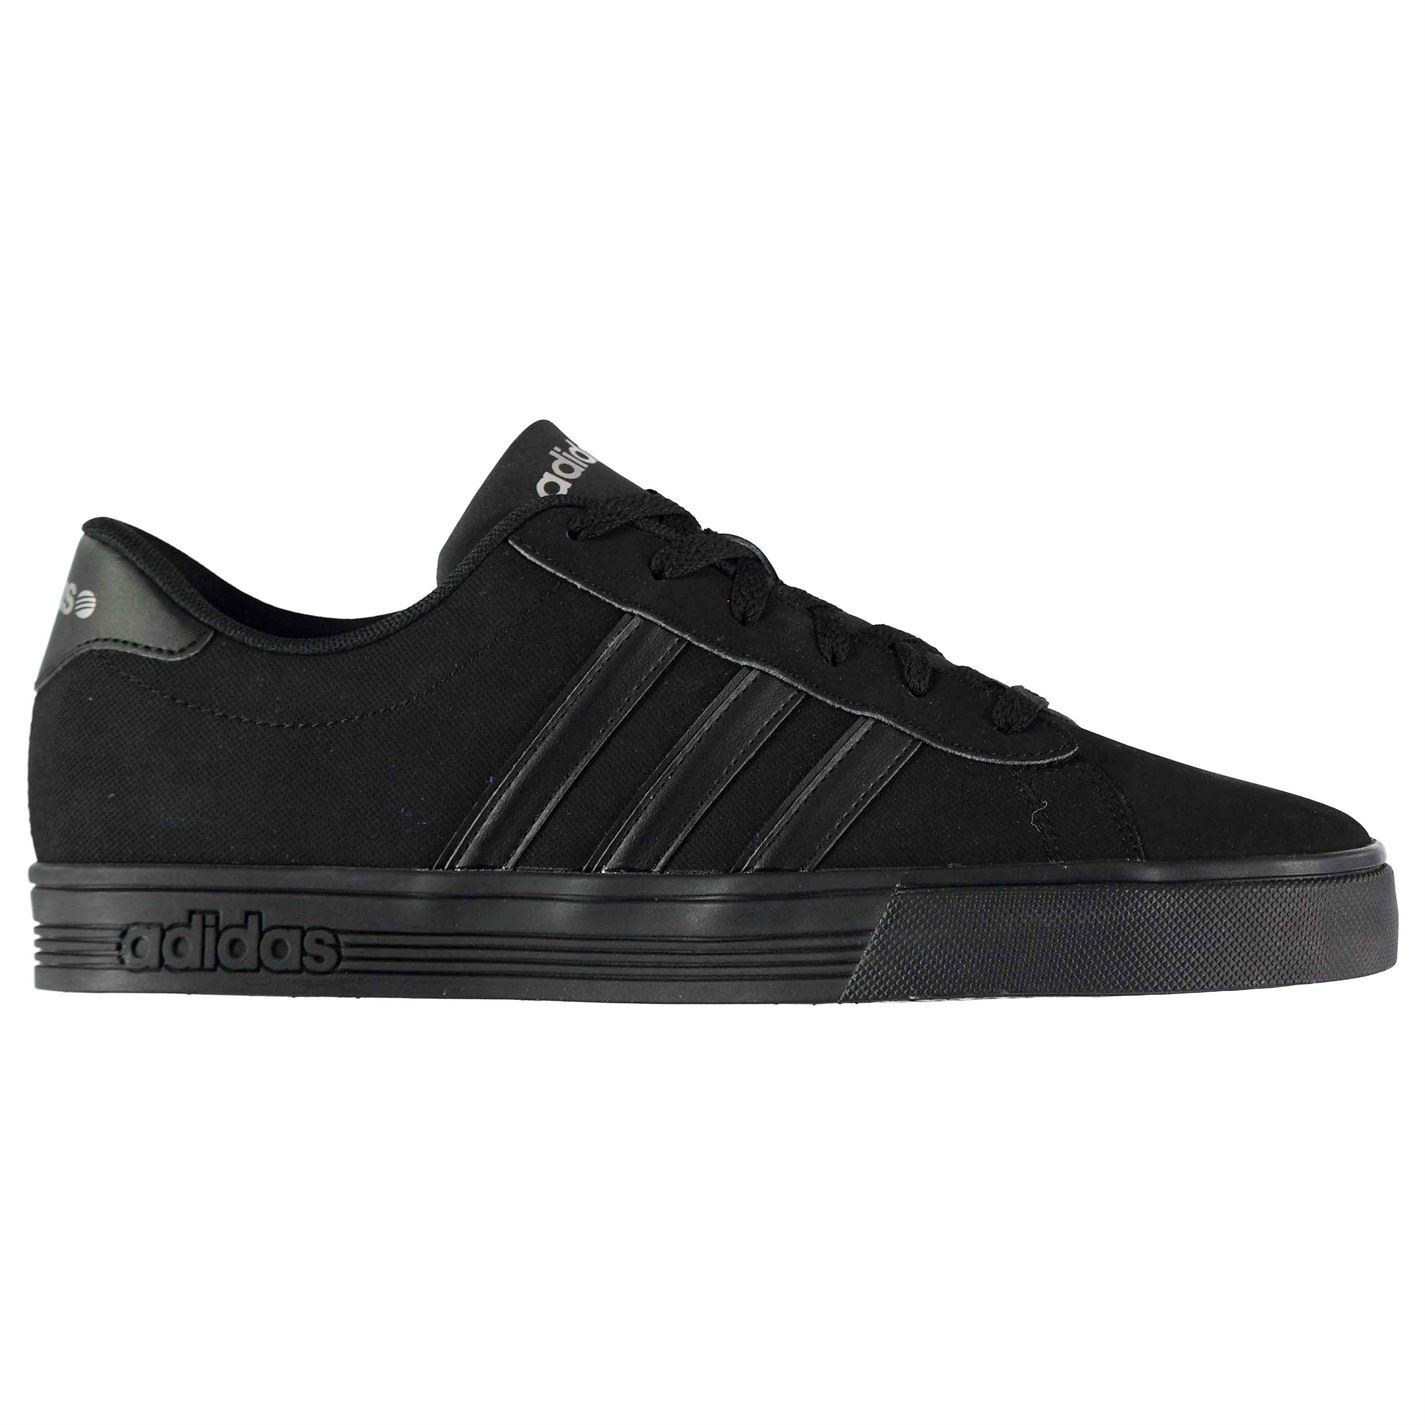 6dfd66da73e8 Details about Mens Daily Team Nubuck Trainers adidas Shoes Lace Up Leather  New